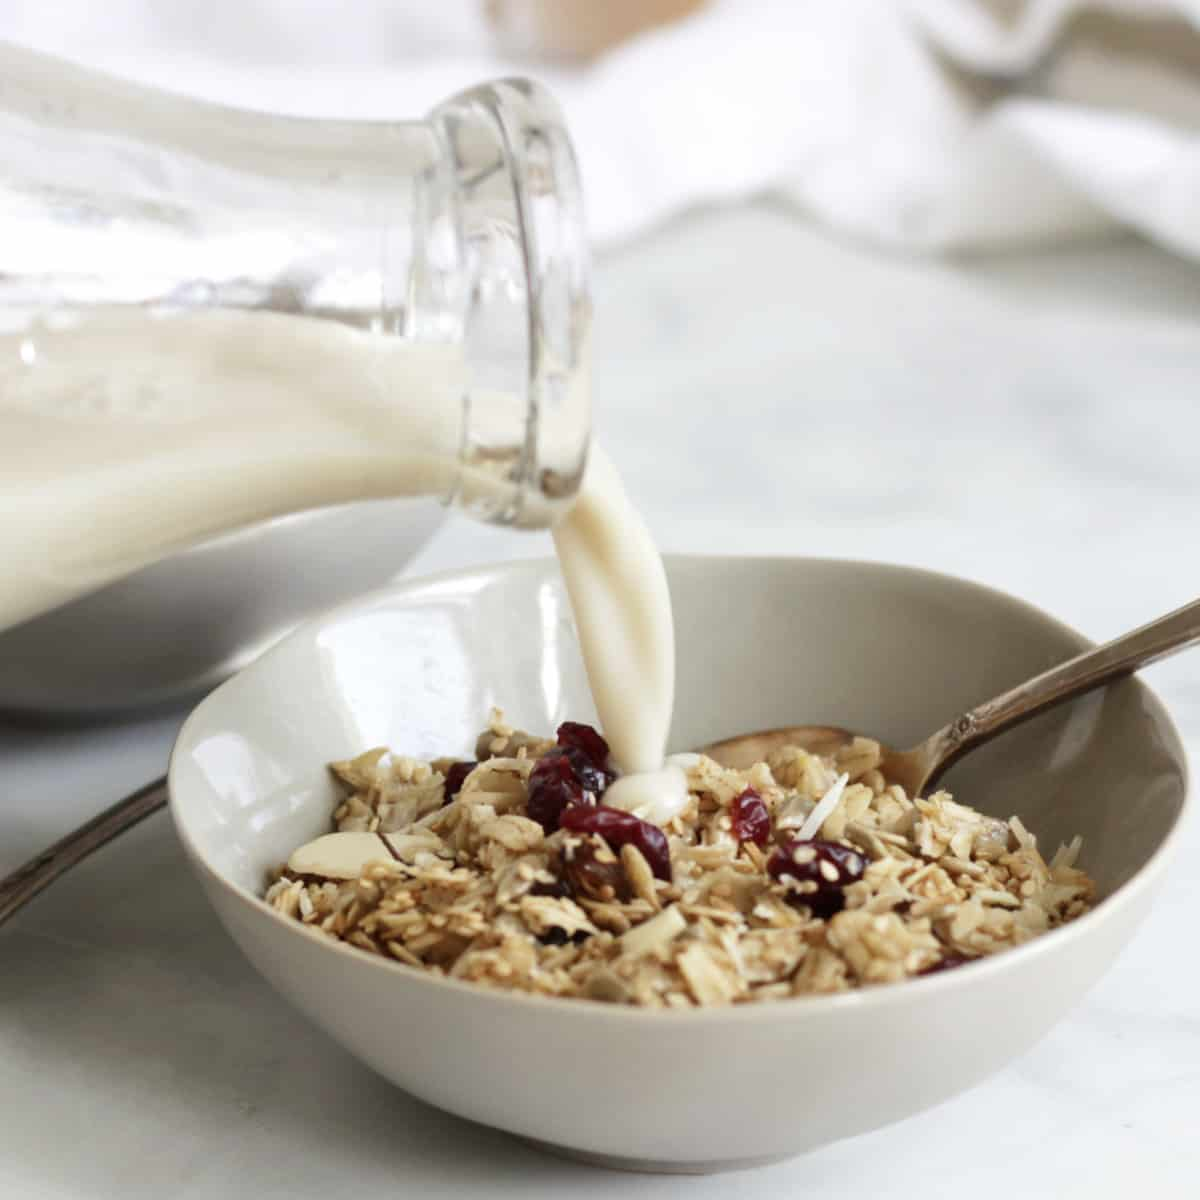 milk pouring from glass bottle onto bowl of granola